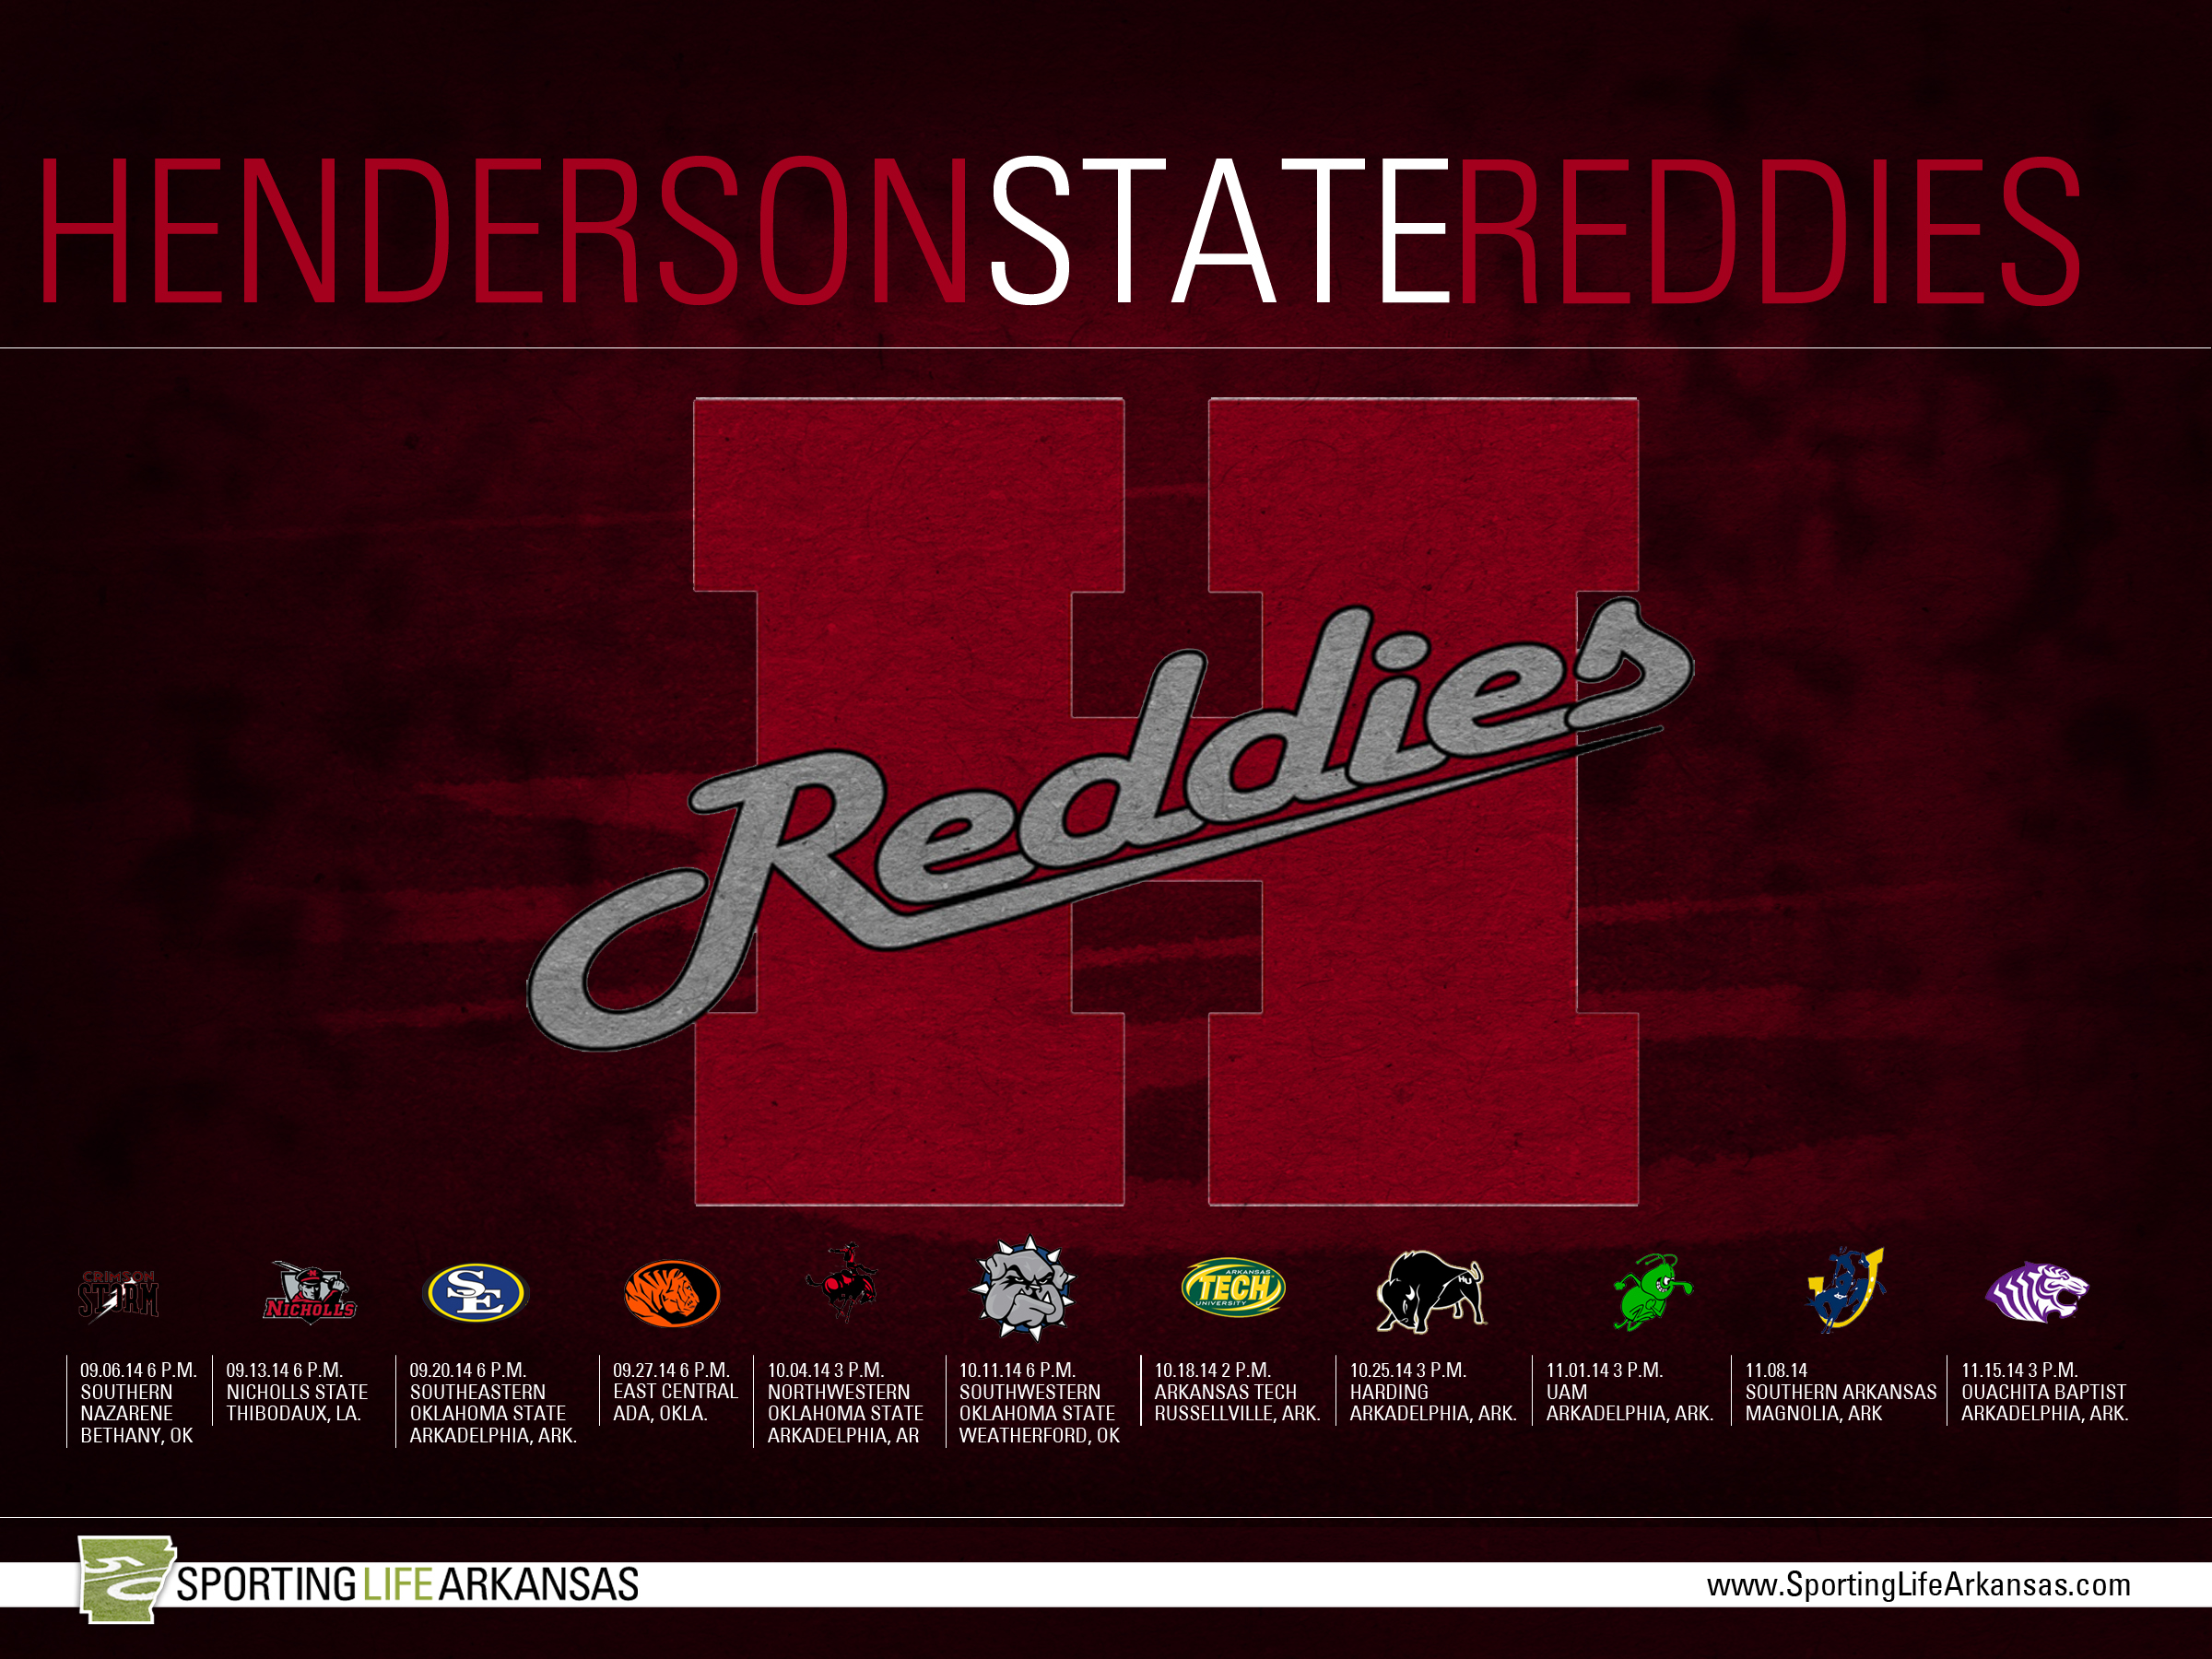 2014 Henderson State Reddies Football Schedule Wallpapers